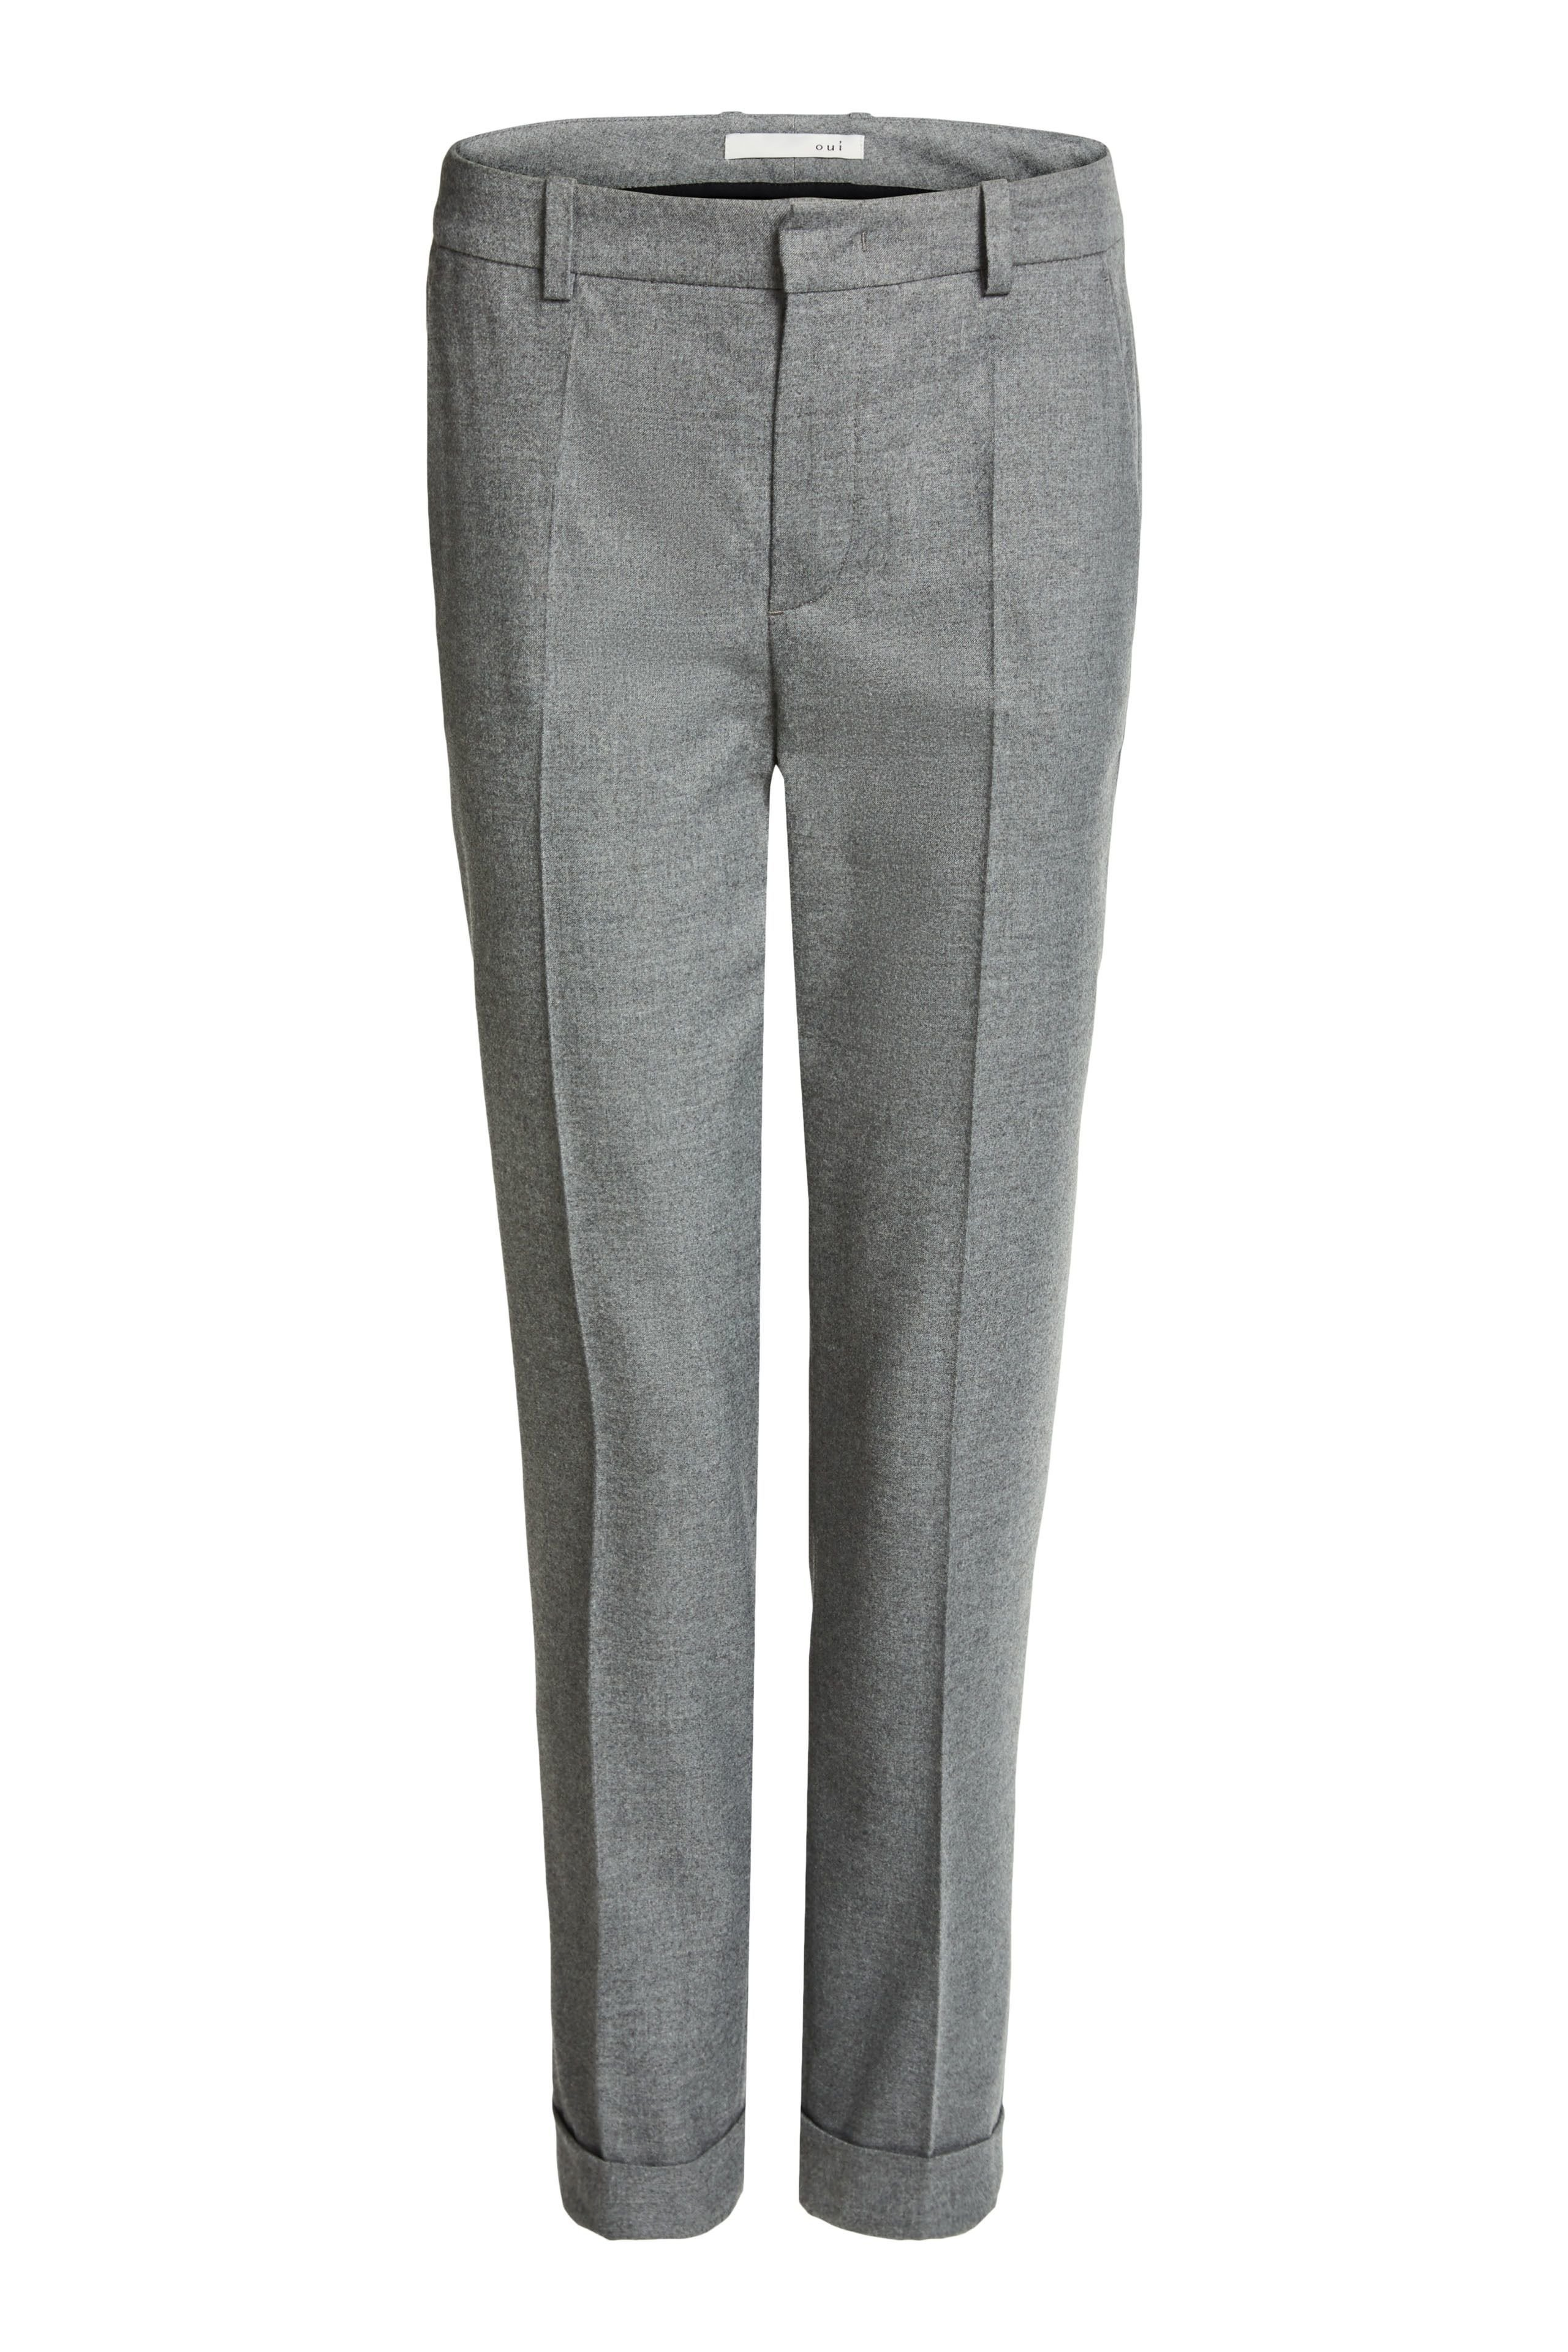 Trousers grey OUTR63634